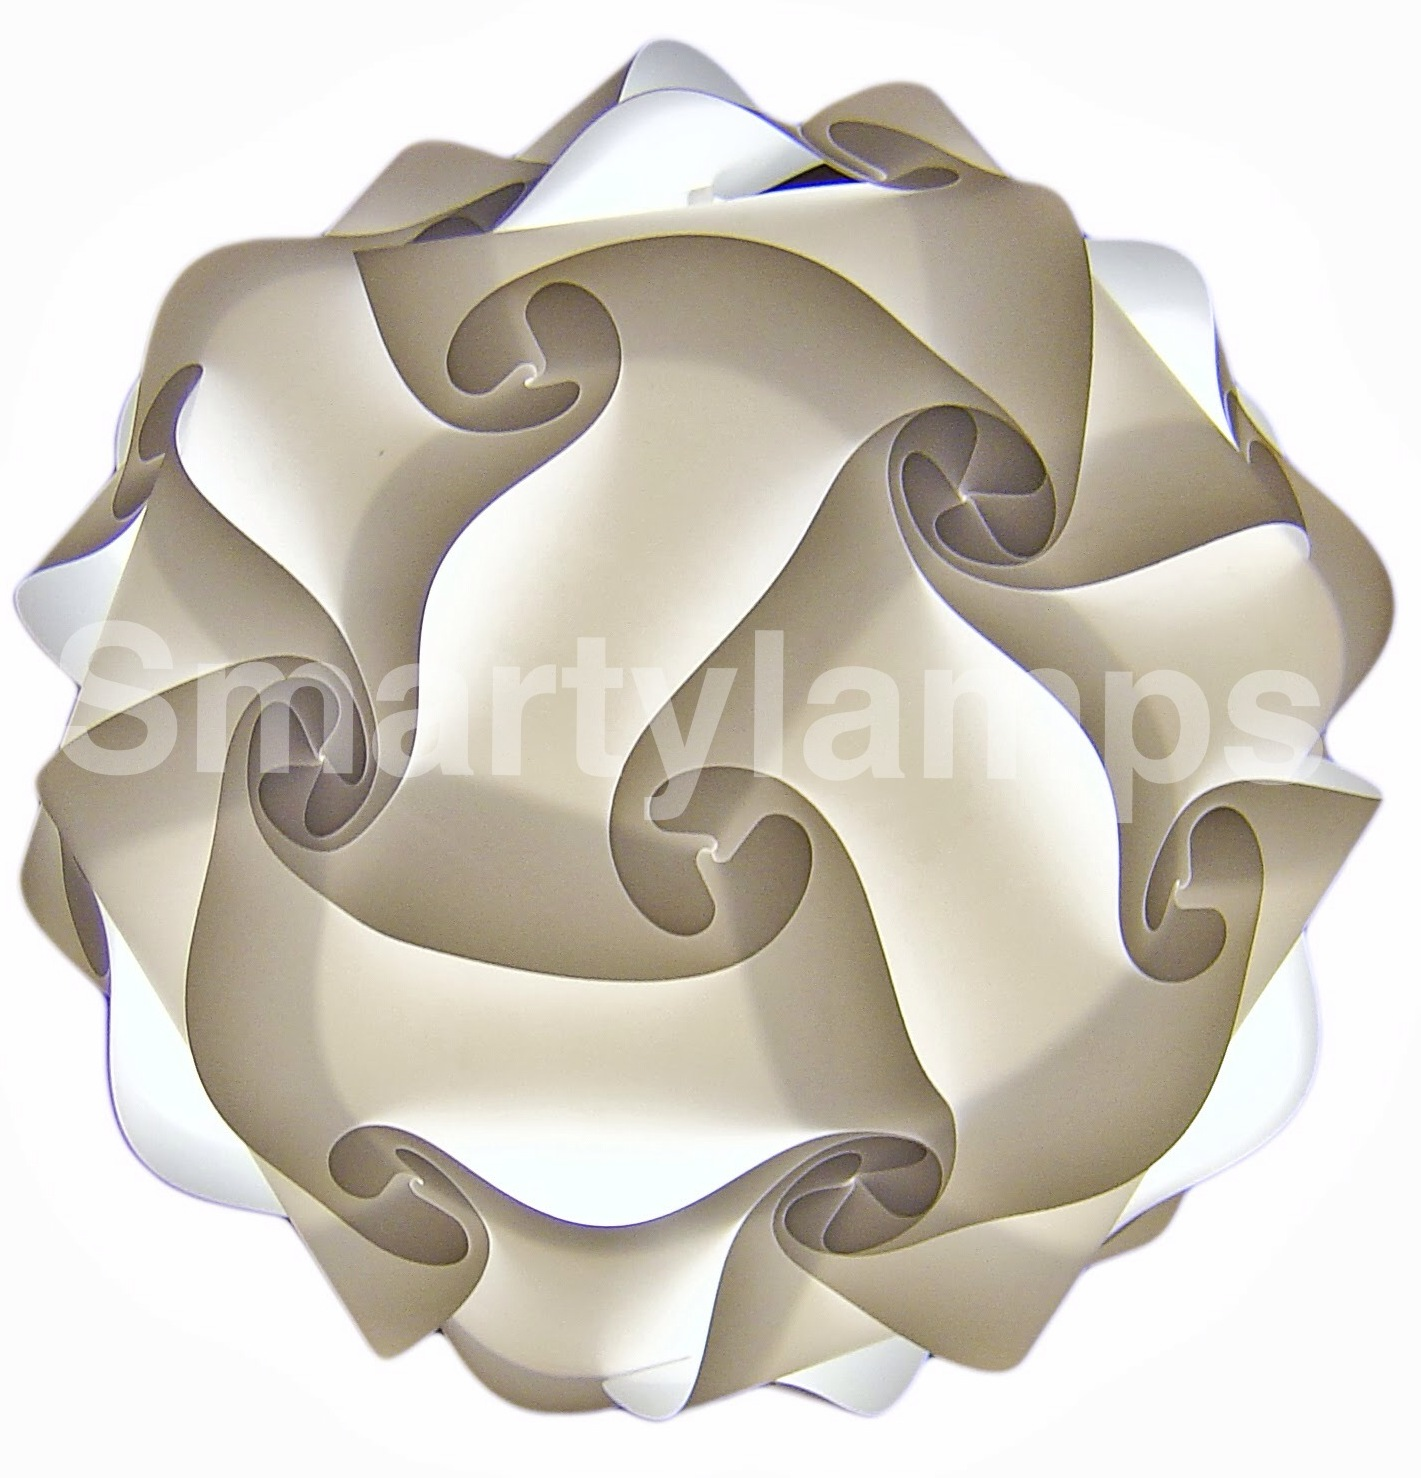 Classic sphere shaped lamp shade smarty lamps lampshades iq cosmo lampshade mozeypictures Image collections